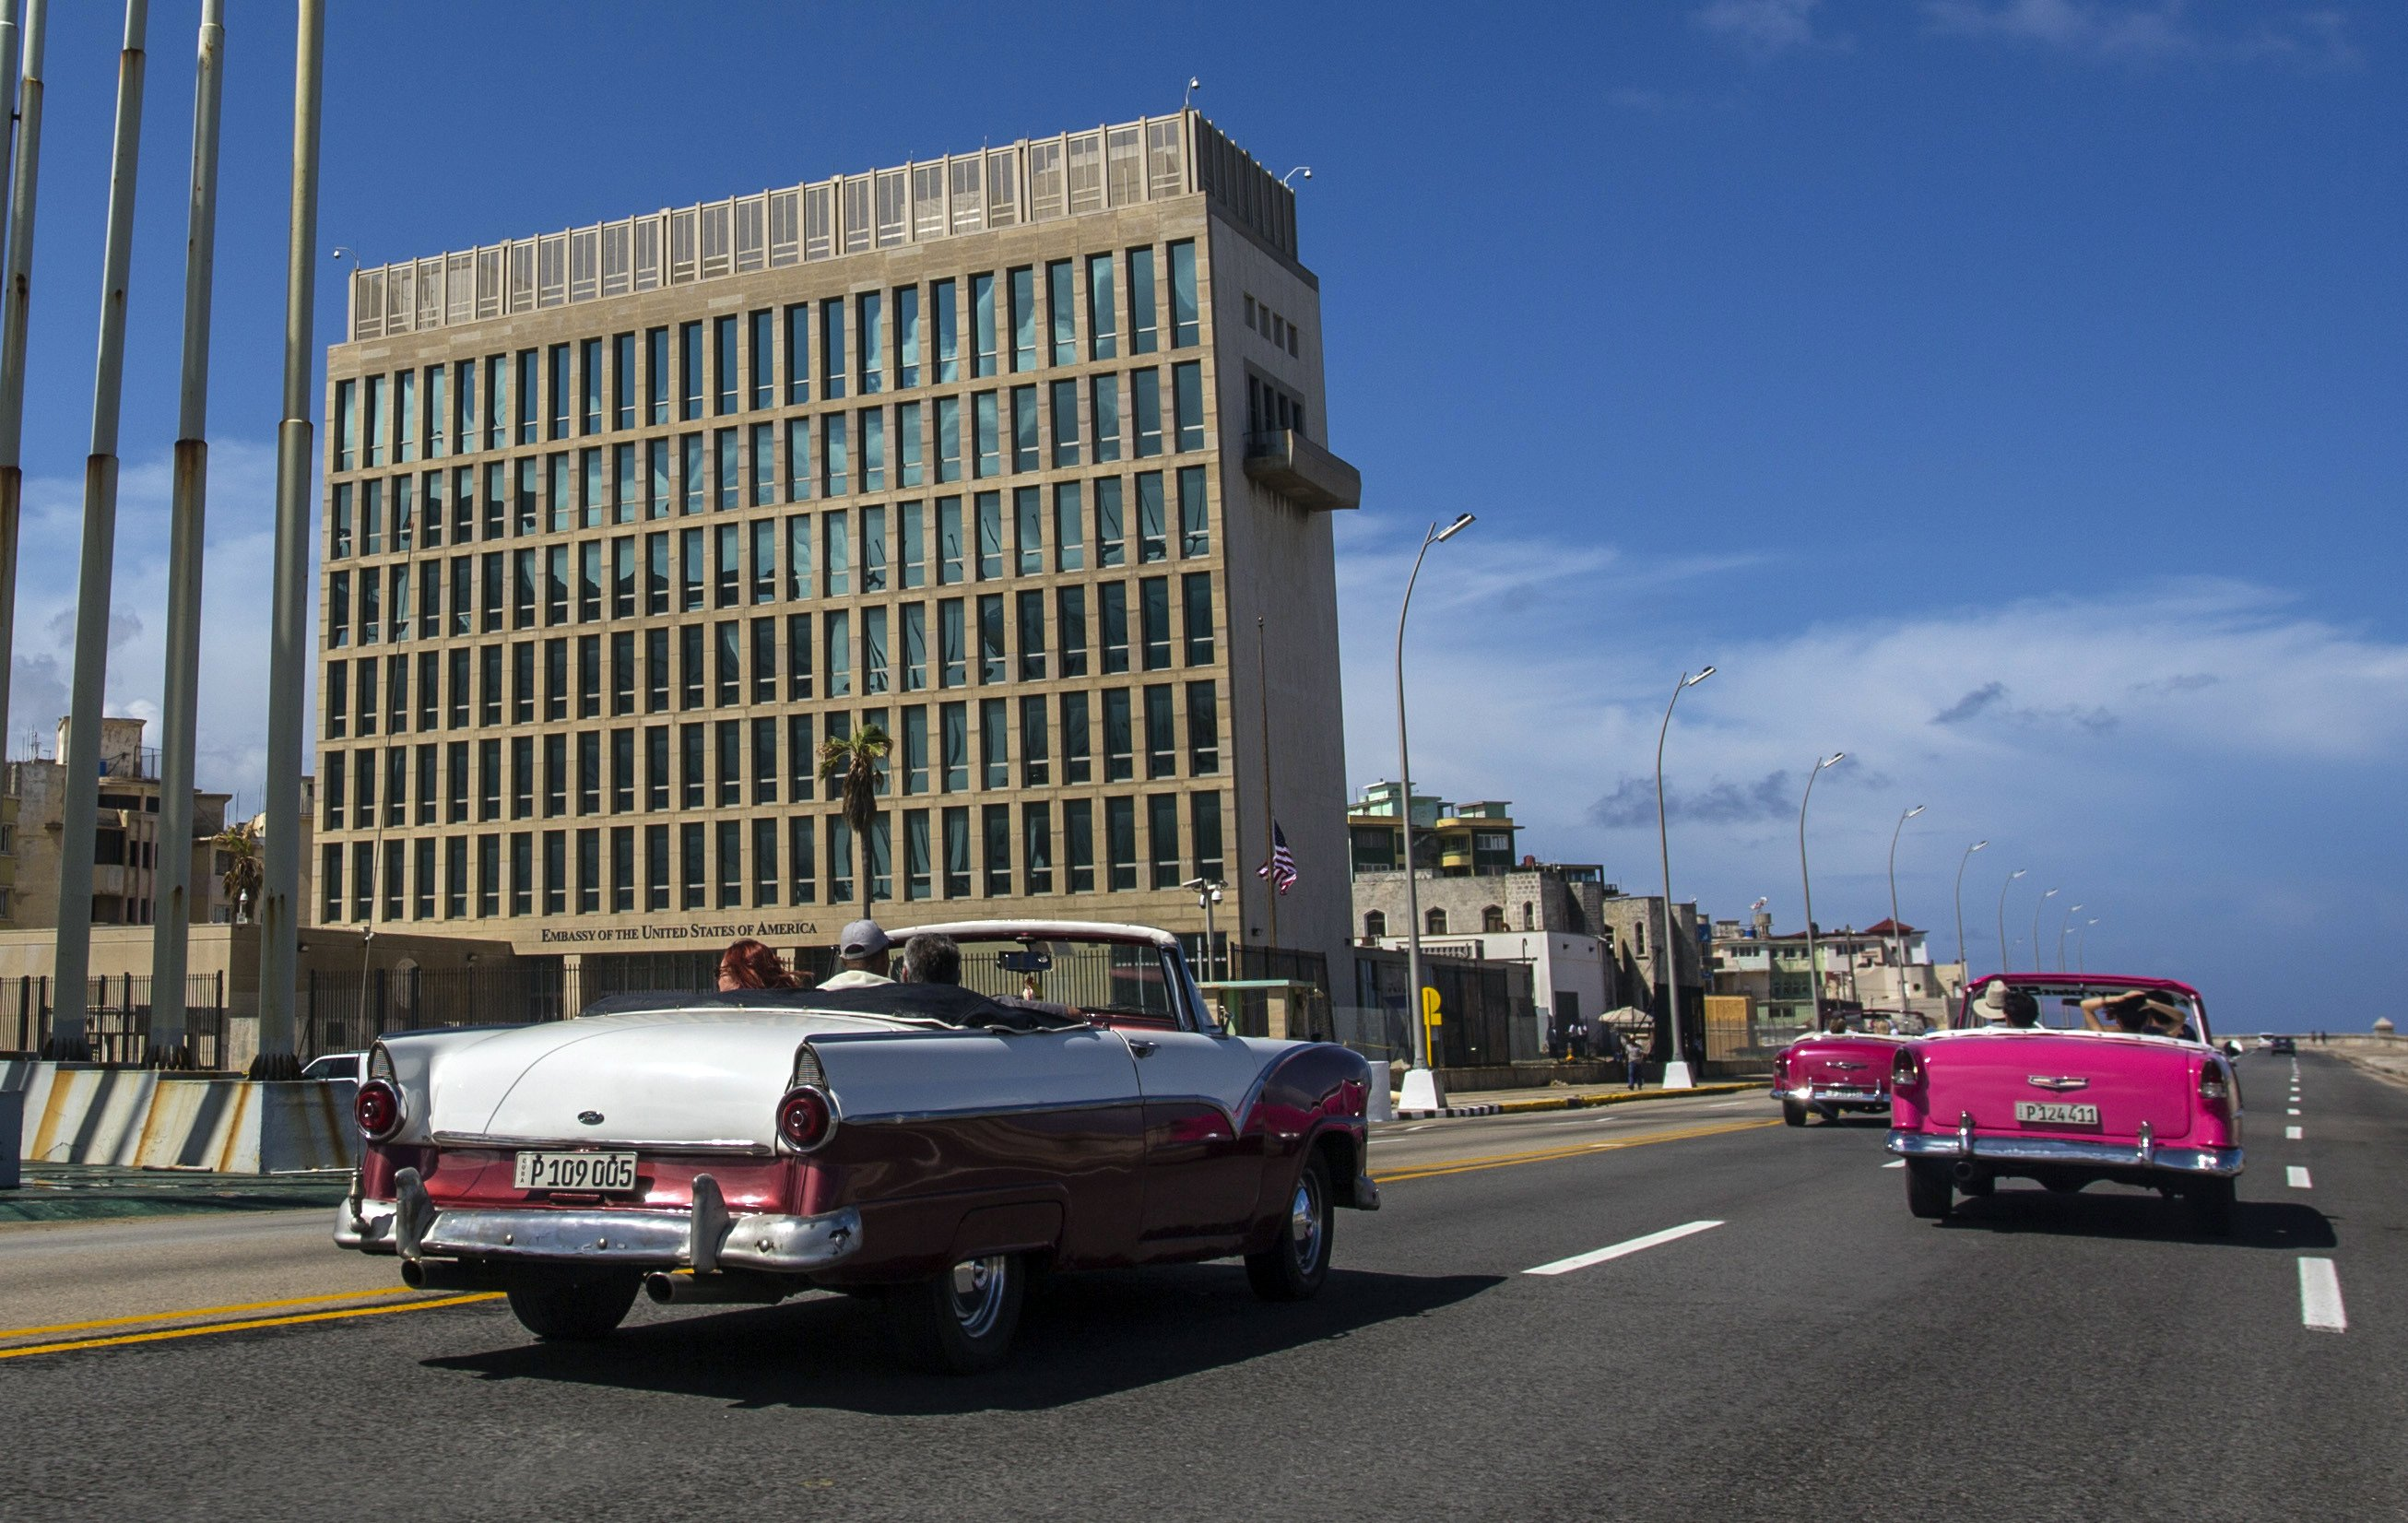 Doctors find brain abnormalities in victims of Cuba mystery